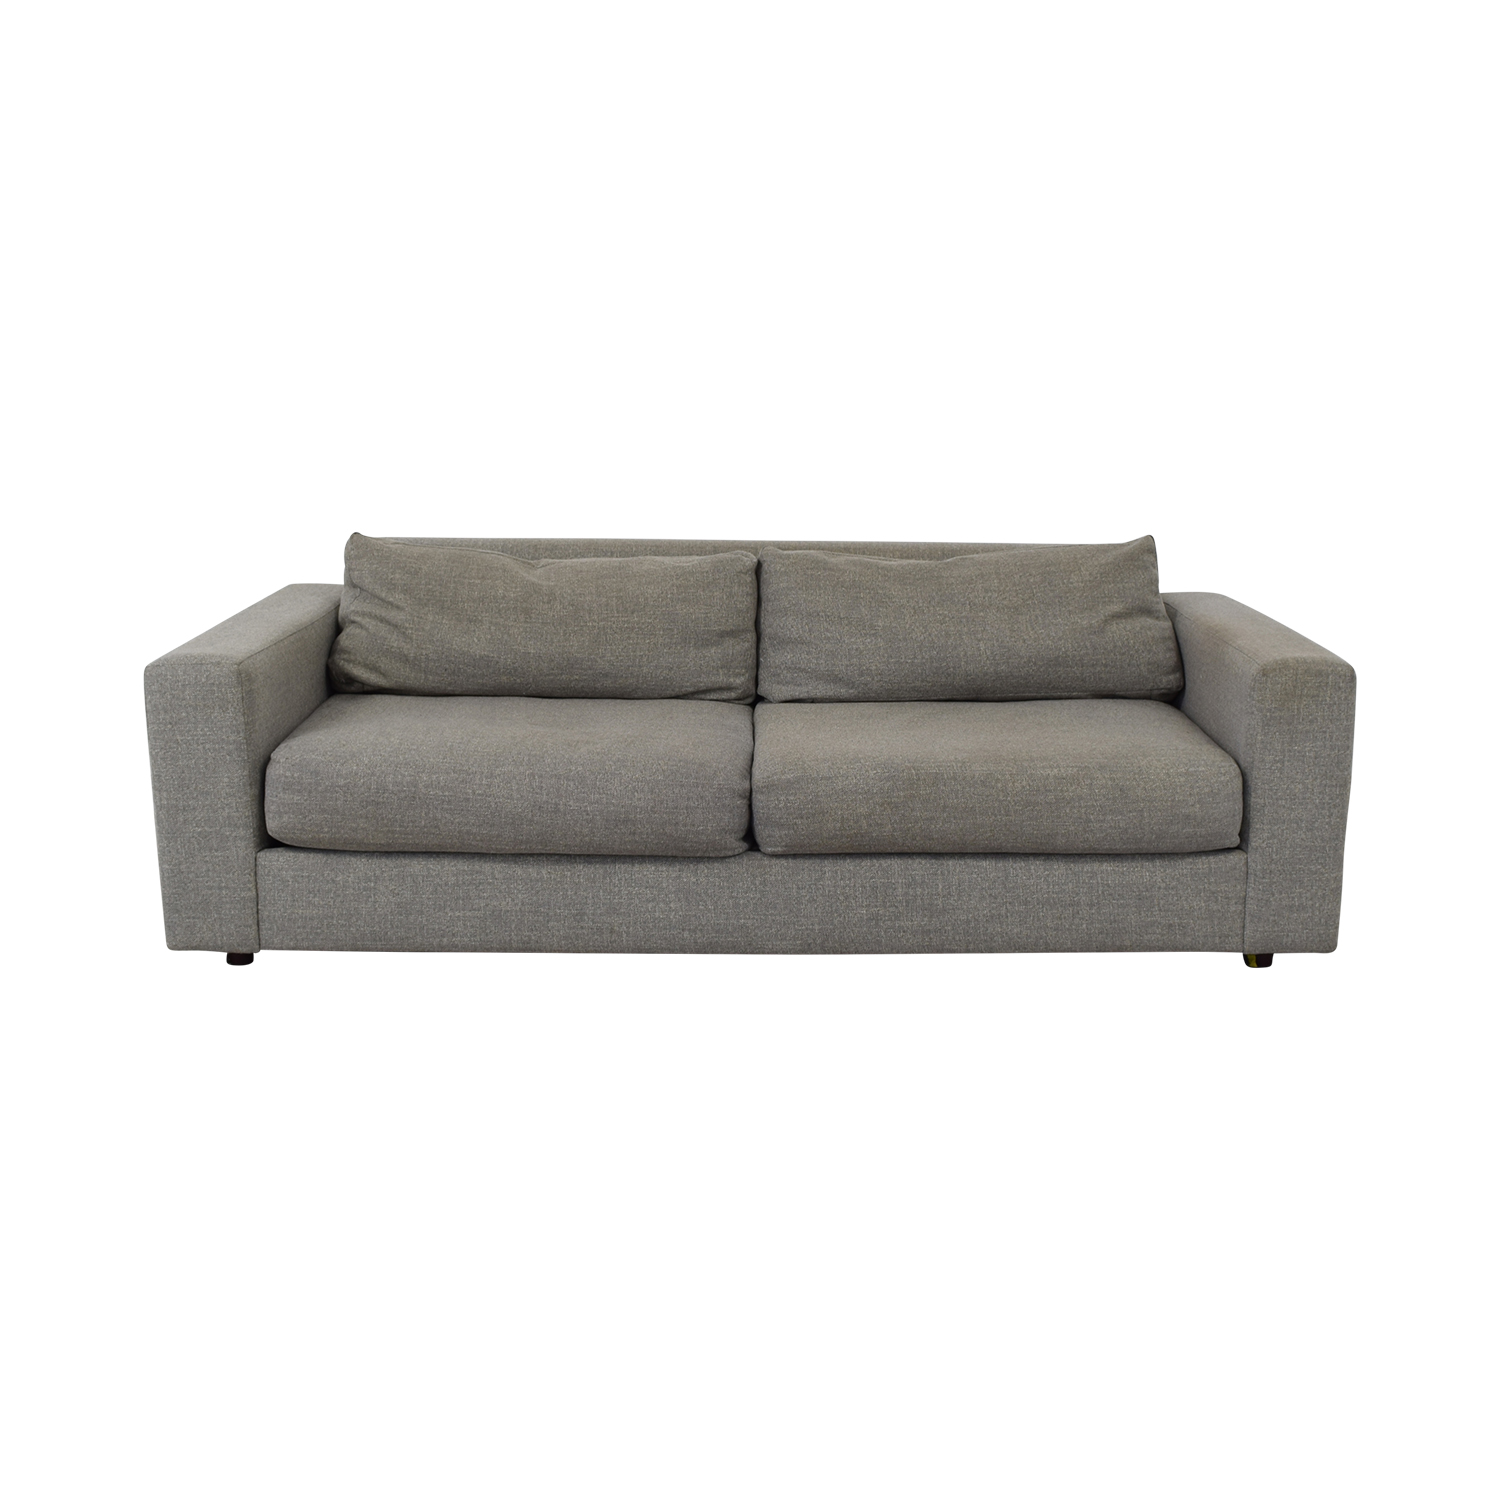 West Elm West Elm Urban Sofa used